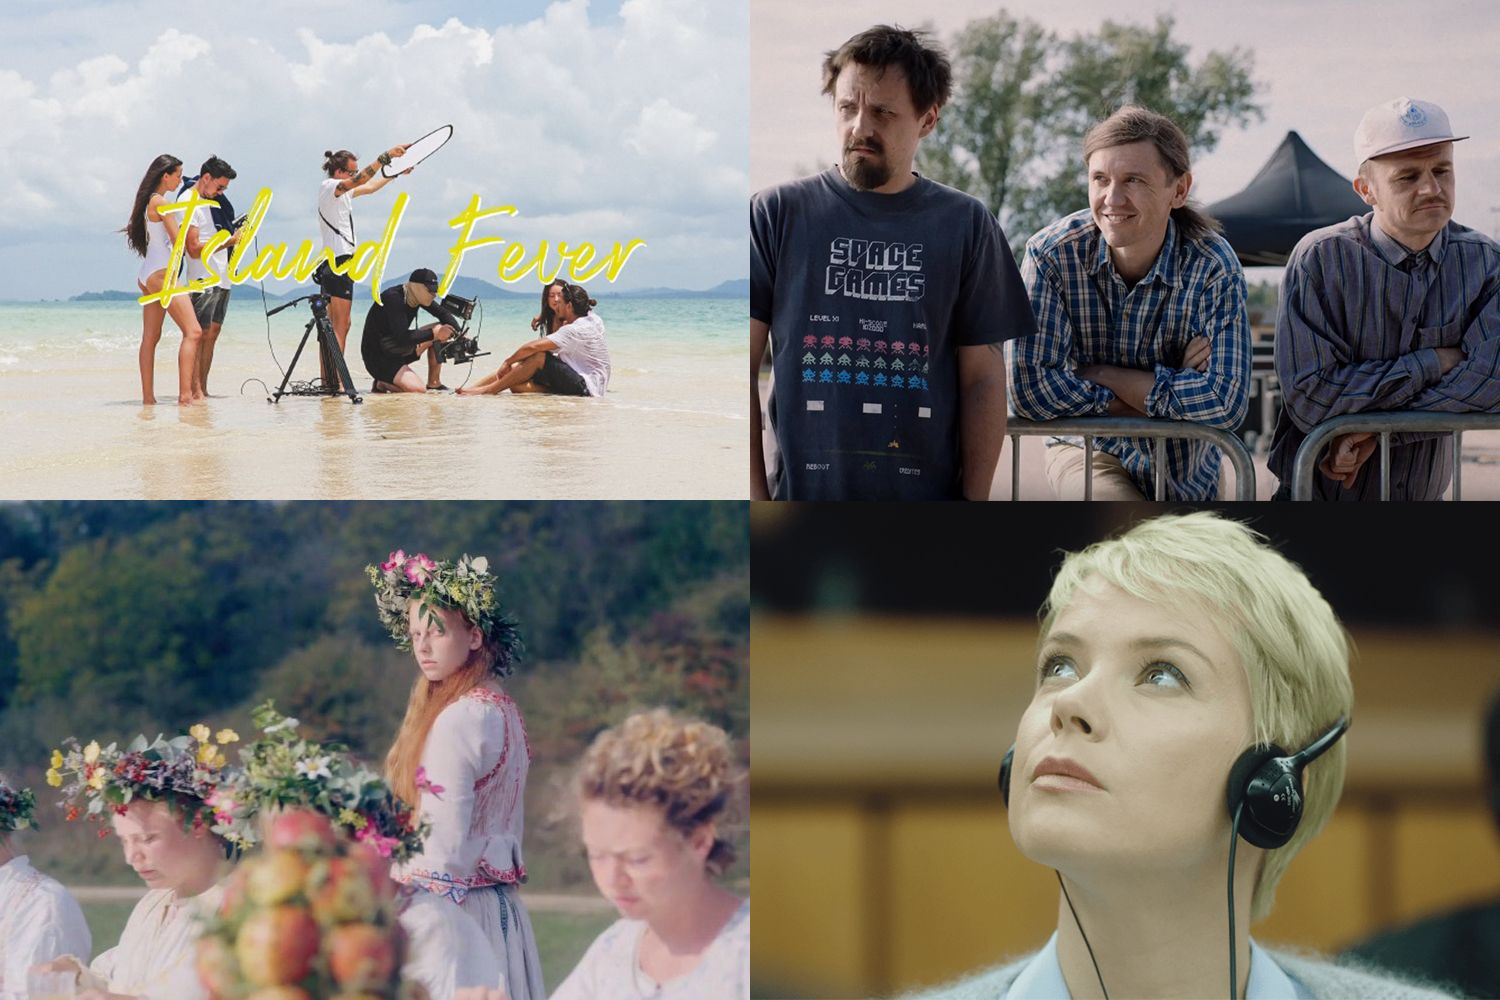 Film Events Not To Be Missed In Bangkok This August-September